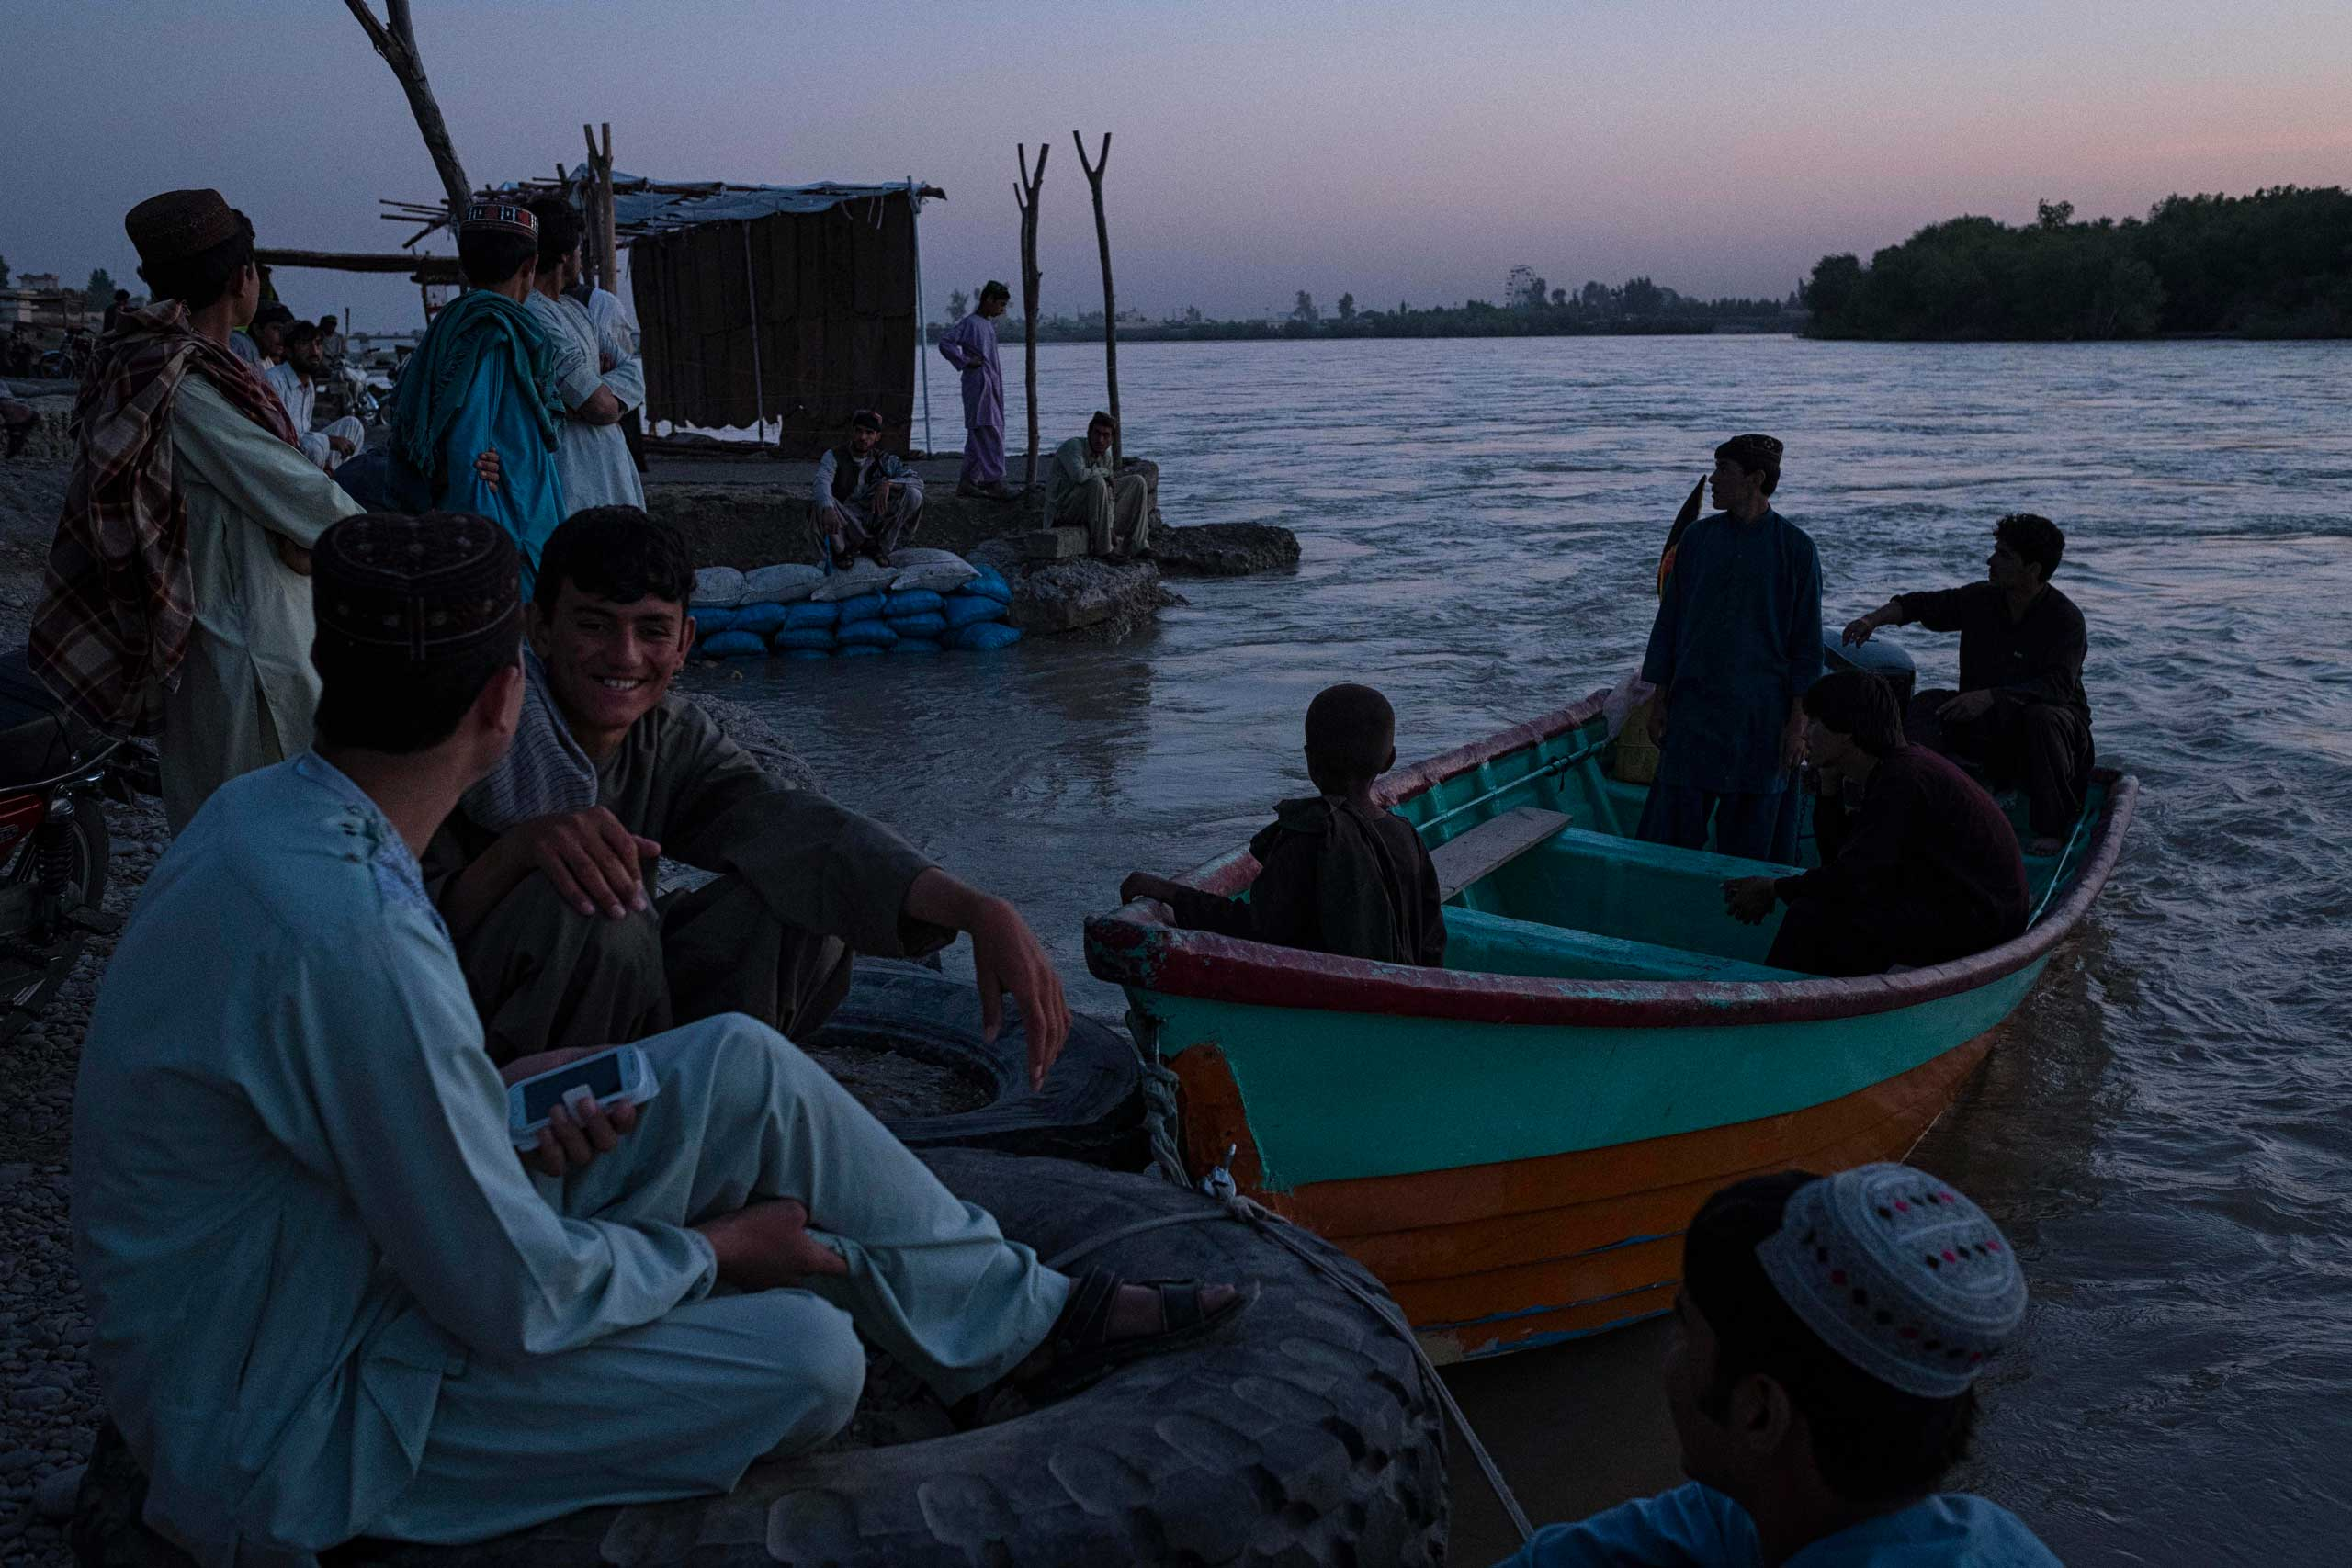 Boys and young men take in the last of the day by the Helmand River in Lashkar Gah, the capital of Helmand Province in southern Afghanistan. Lashkar Gah came under serious threat of being overrun in late 2015 with Taliban insurgents mounting attacks from several locations outside the city. The city remains tense with the surrounding districts contested or under the control of the Taliban and with a bloody fighting season expected still to come.